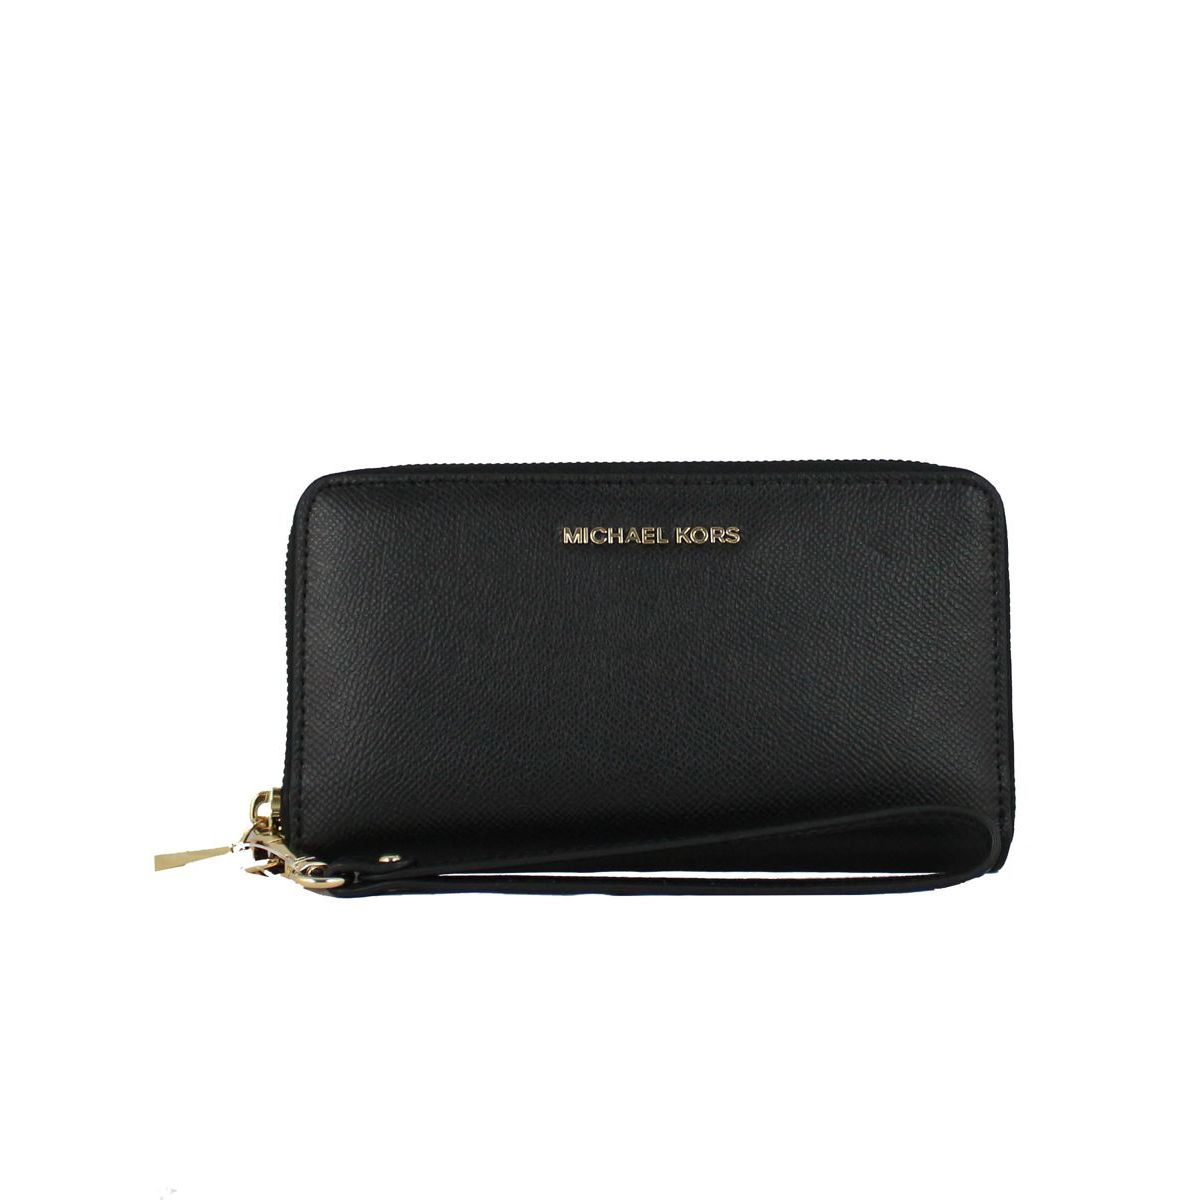 Wrist bag Wristlets in saffiano leather Black Michael Kors